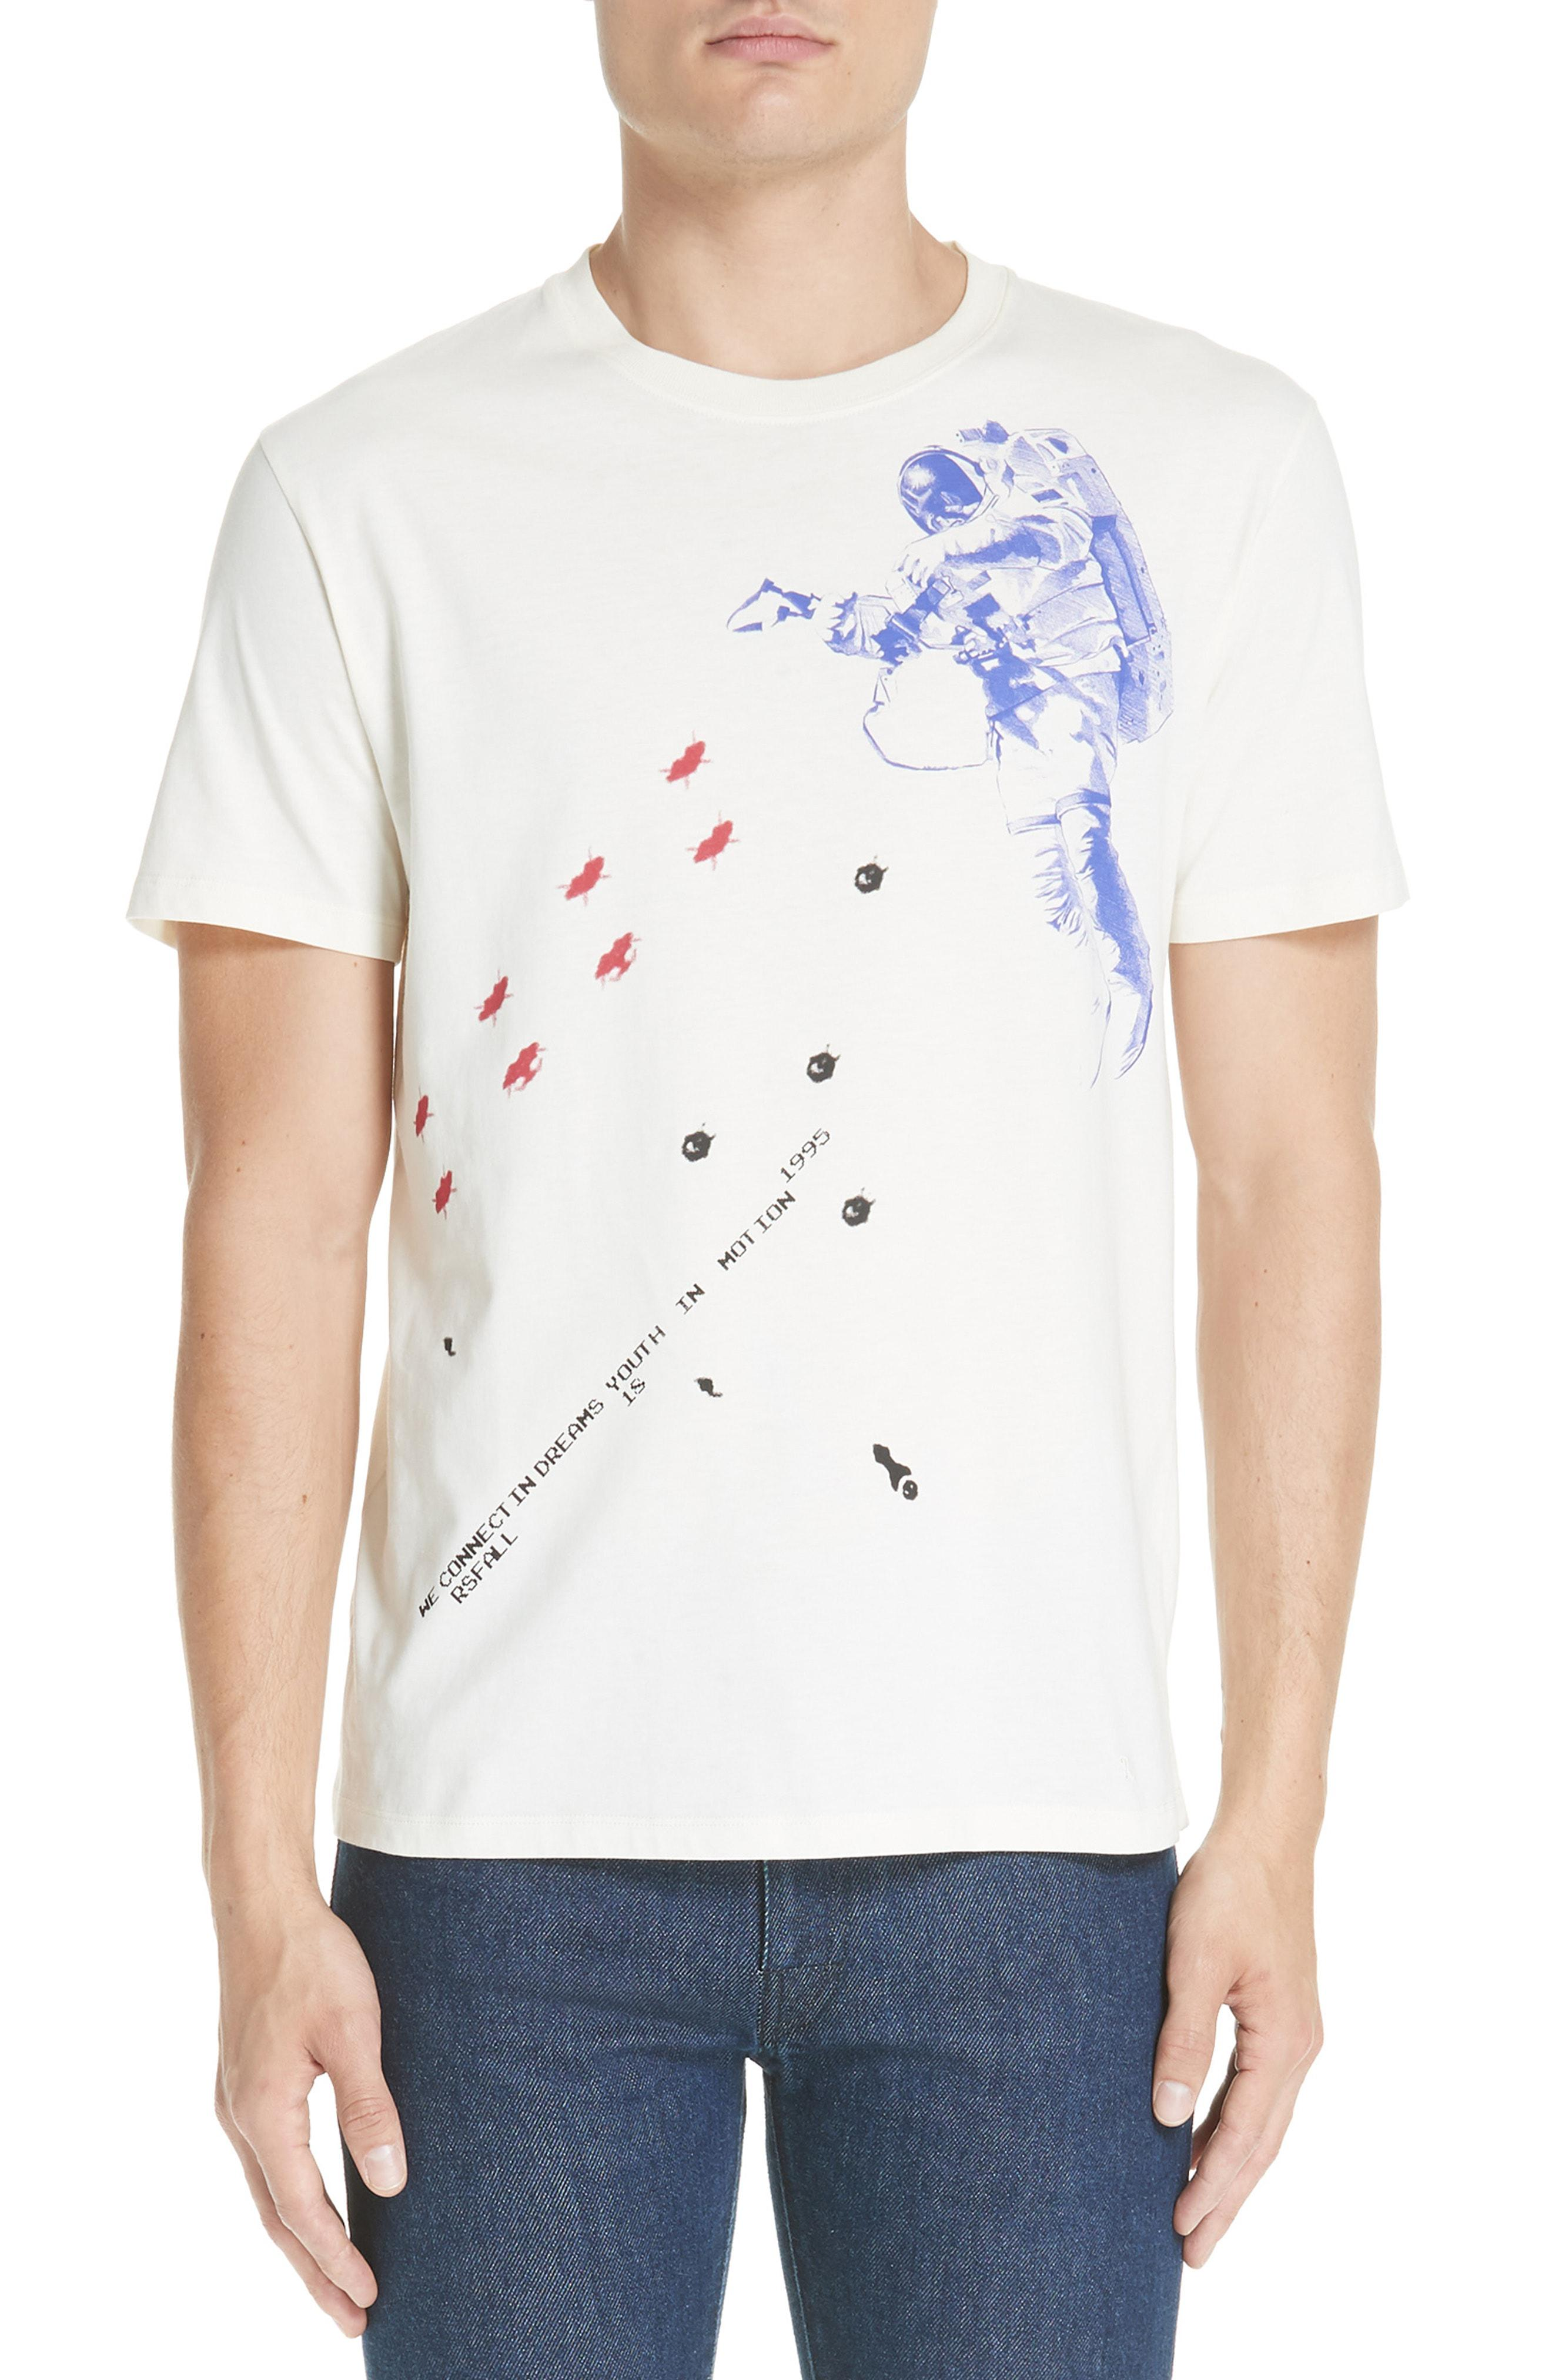 60b52d962 Lyst - Raf Simons Slim Fit Astronaut Graphic T-shirt in White for Men